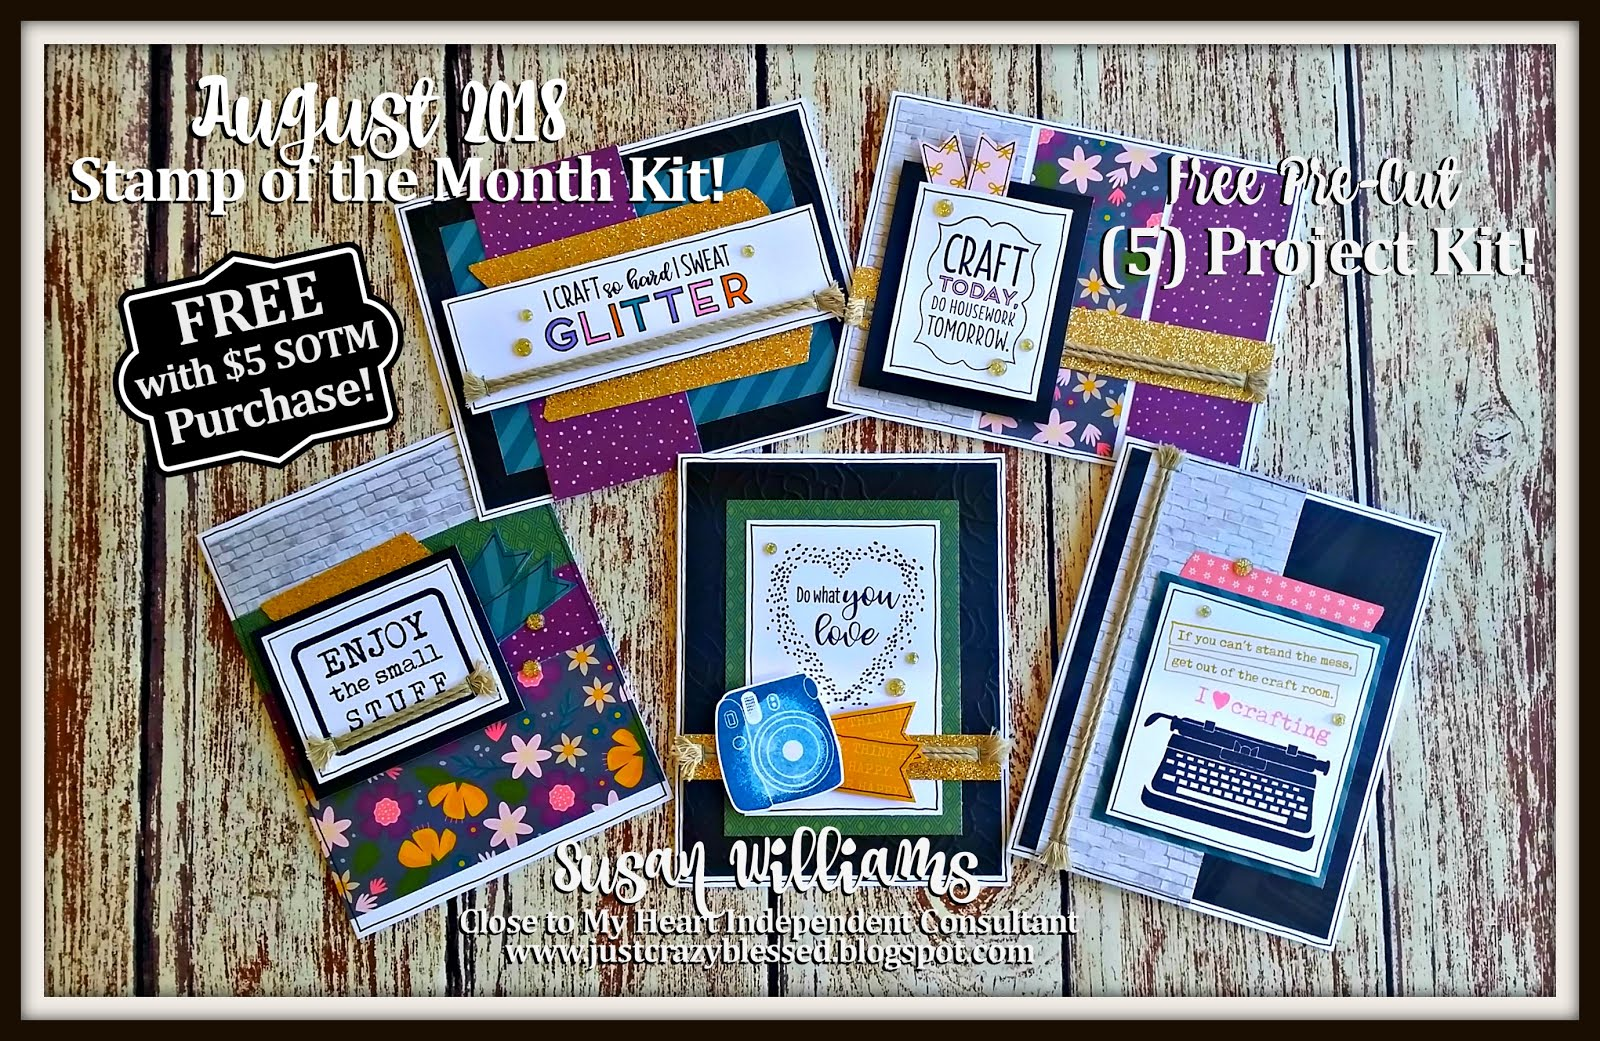 August 2018 Stamp of the Month Workshop!